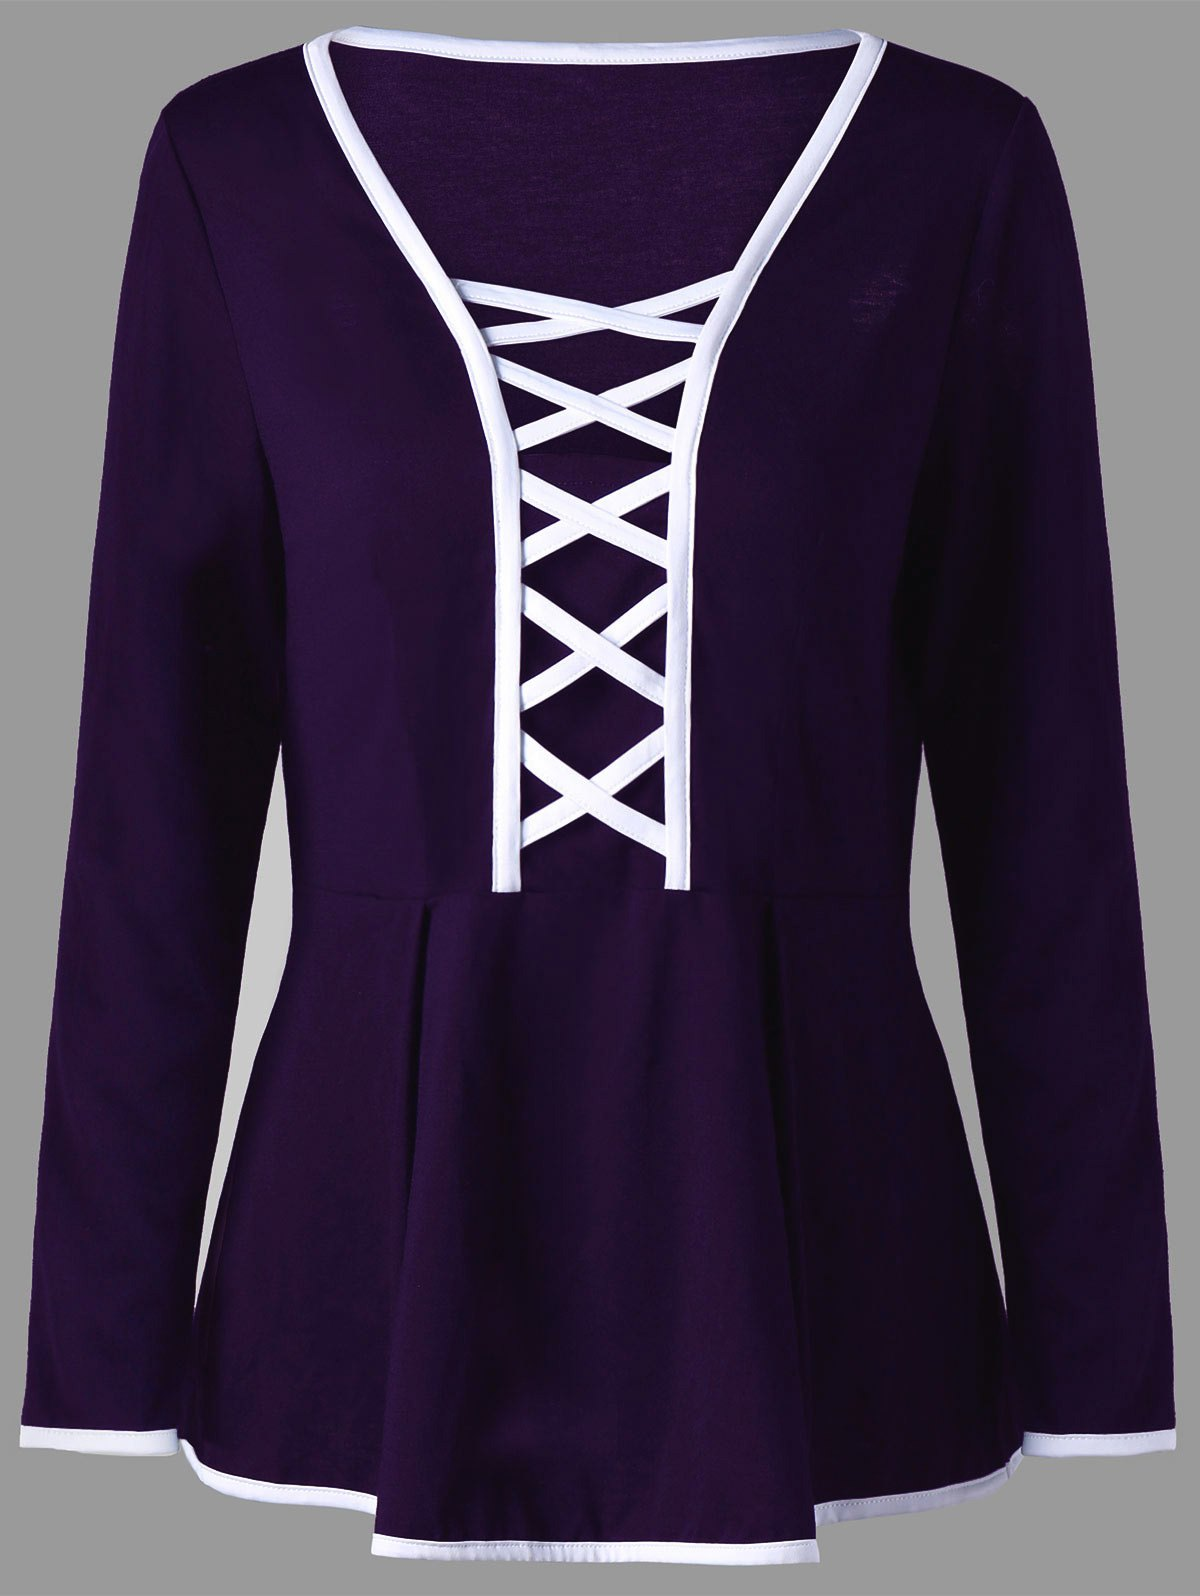 Plus Size Criss Cross Long Sleeve Peplum TopWOMEN<br><br>Size: 3XL; Color: CONCORD; Material: Polyester,Spandex; Shirt Length: Regular; Sleeve Length: Full; Collar: V-Neck; Style: Fashion; Season: Fall,Spring; Pattern Type: Solid; Weight: 0.2700kg; Package Contents: 1 x Top;